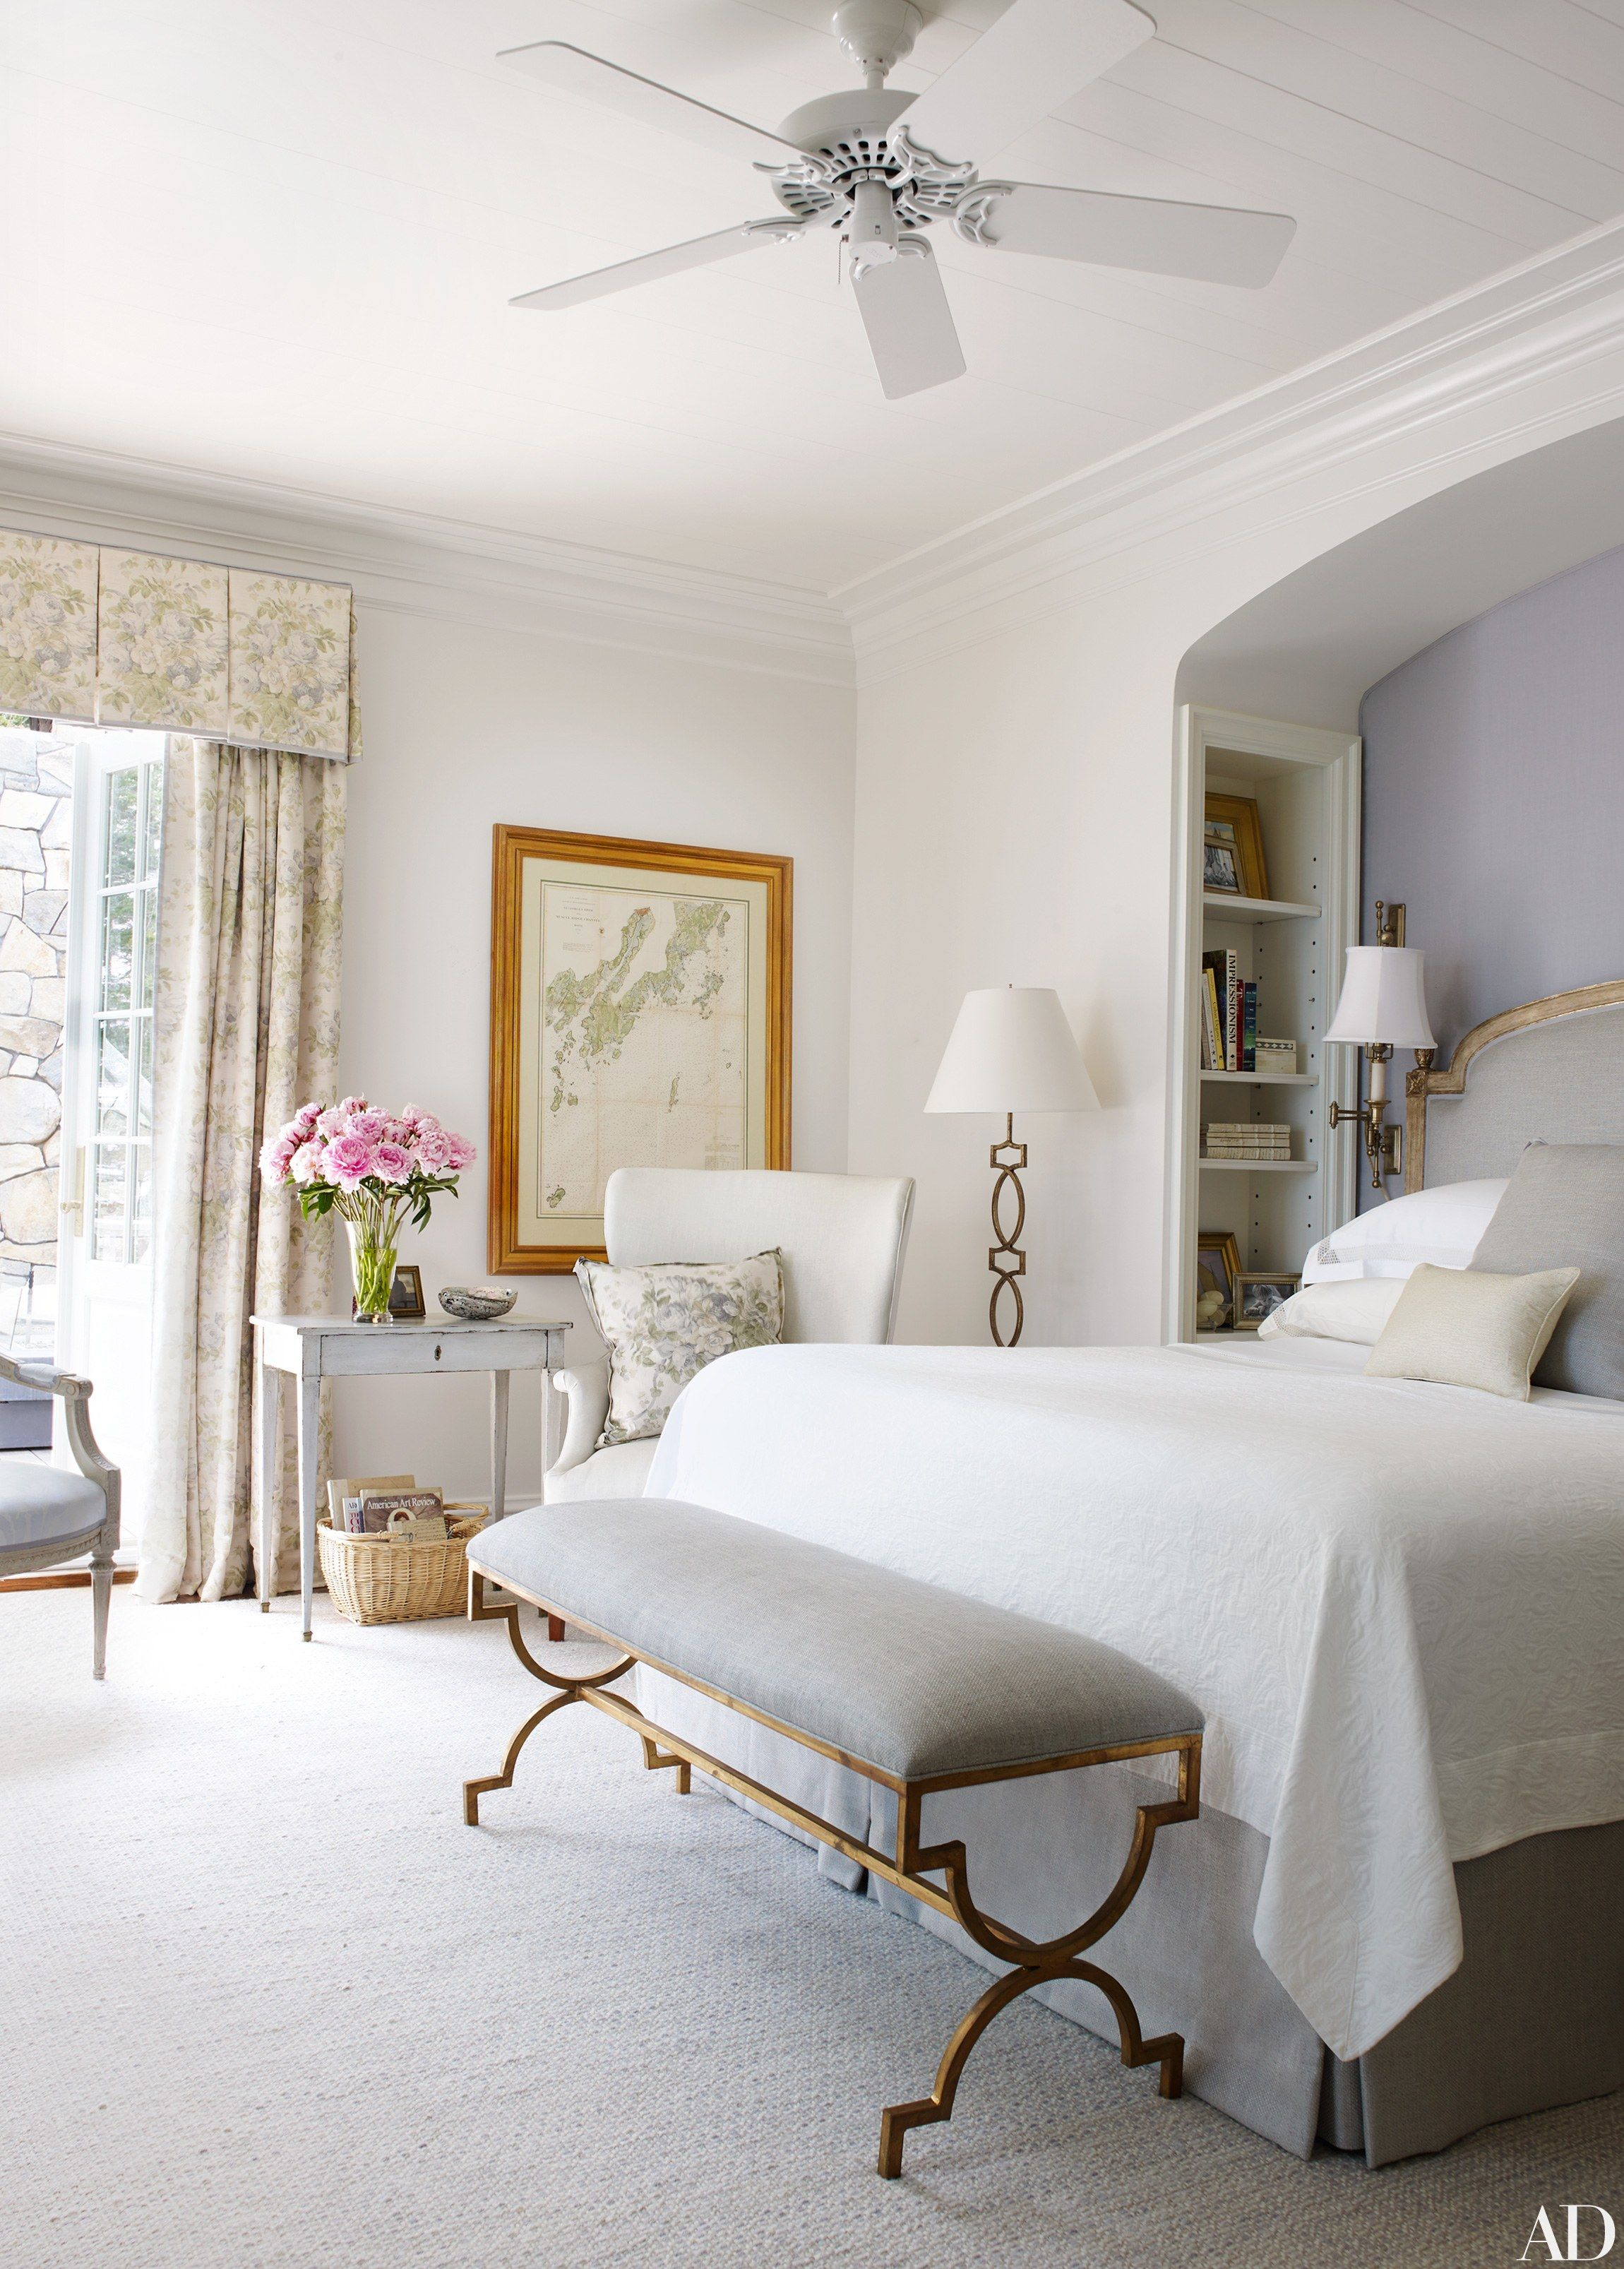 Suzanne Kasler and Les Cole Transform a Compound on the